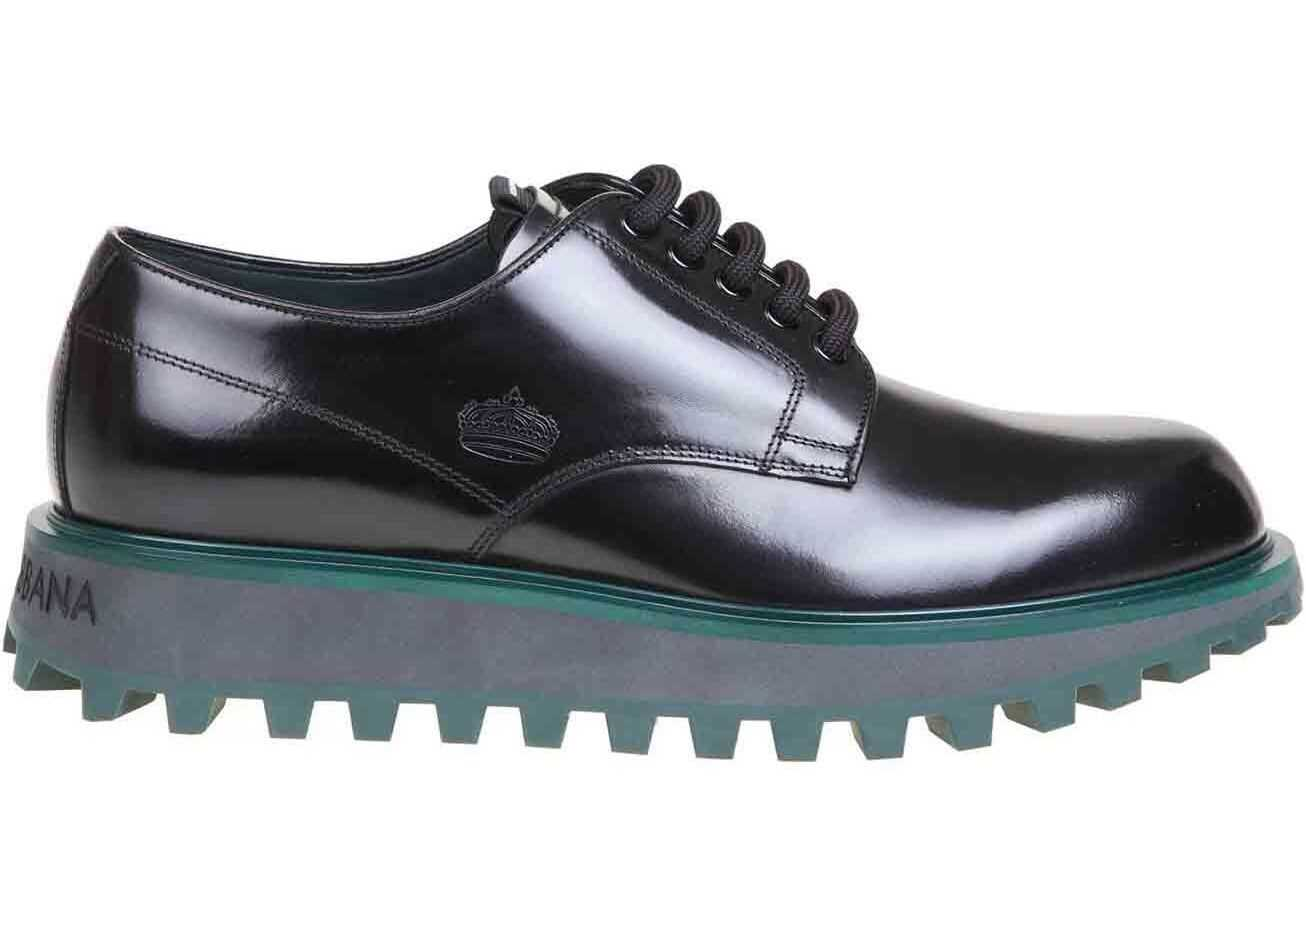 Derby Shoes In Black With Petrol-Colored Sole thumbnail